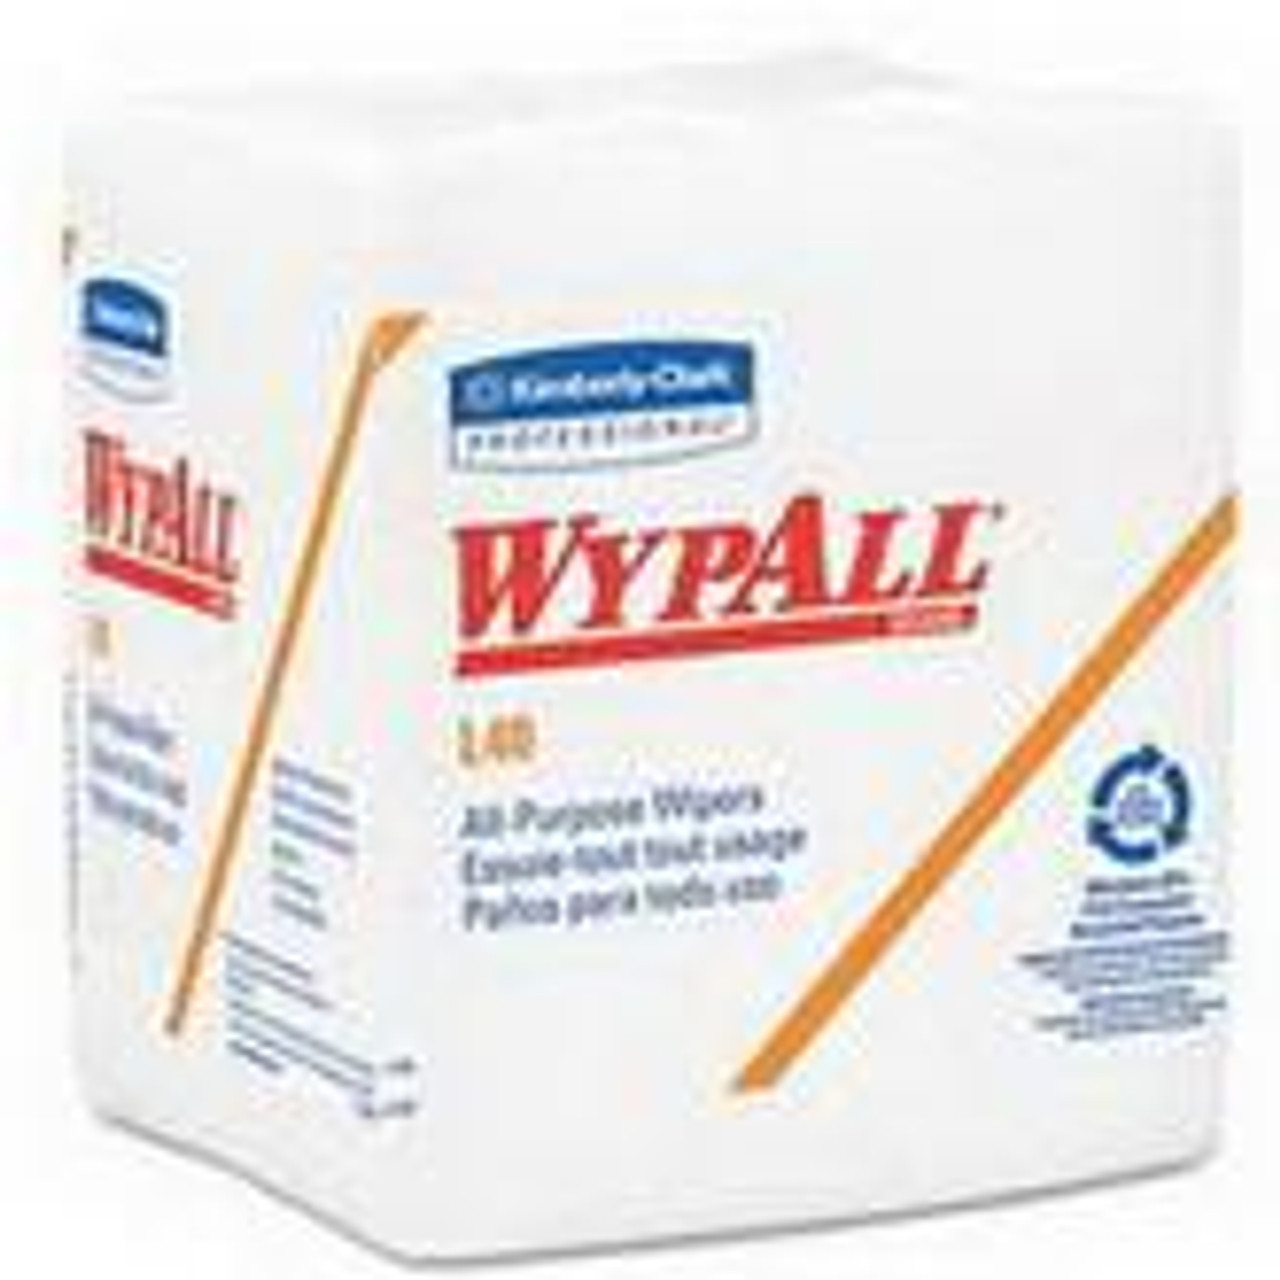 "Wypall L40 Wiper 12-1/2"" x 13"", White"